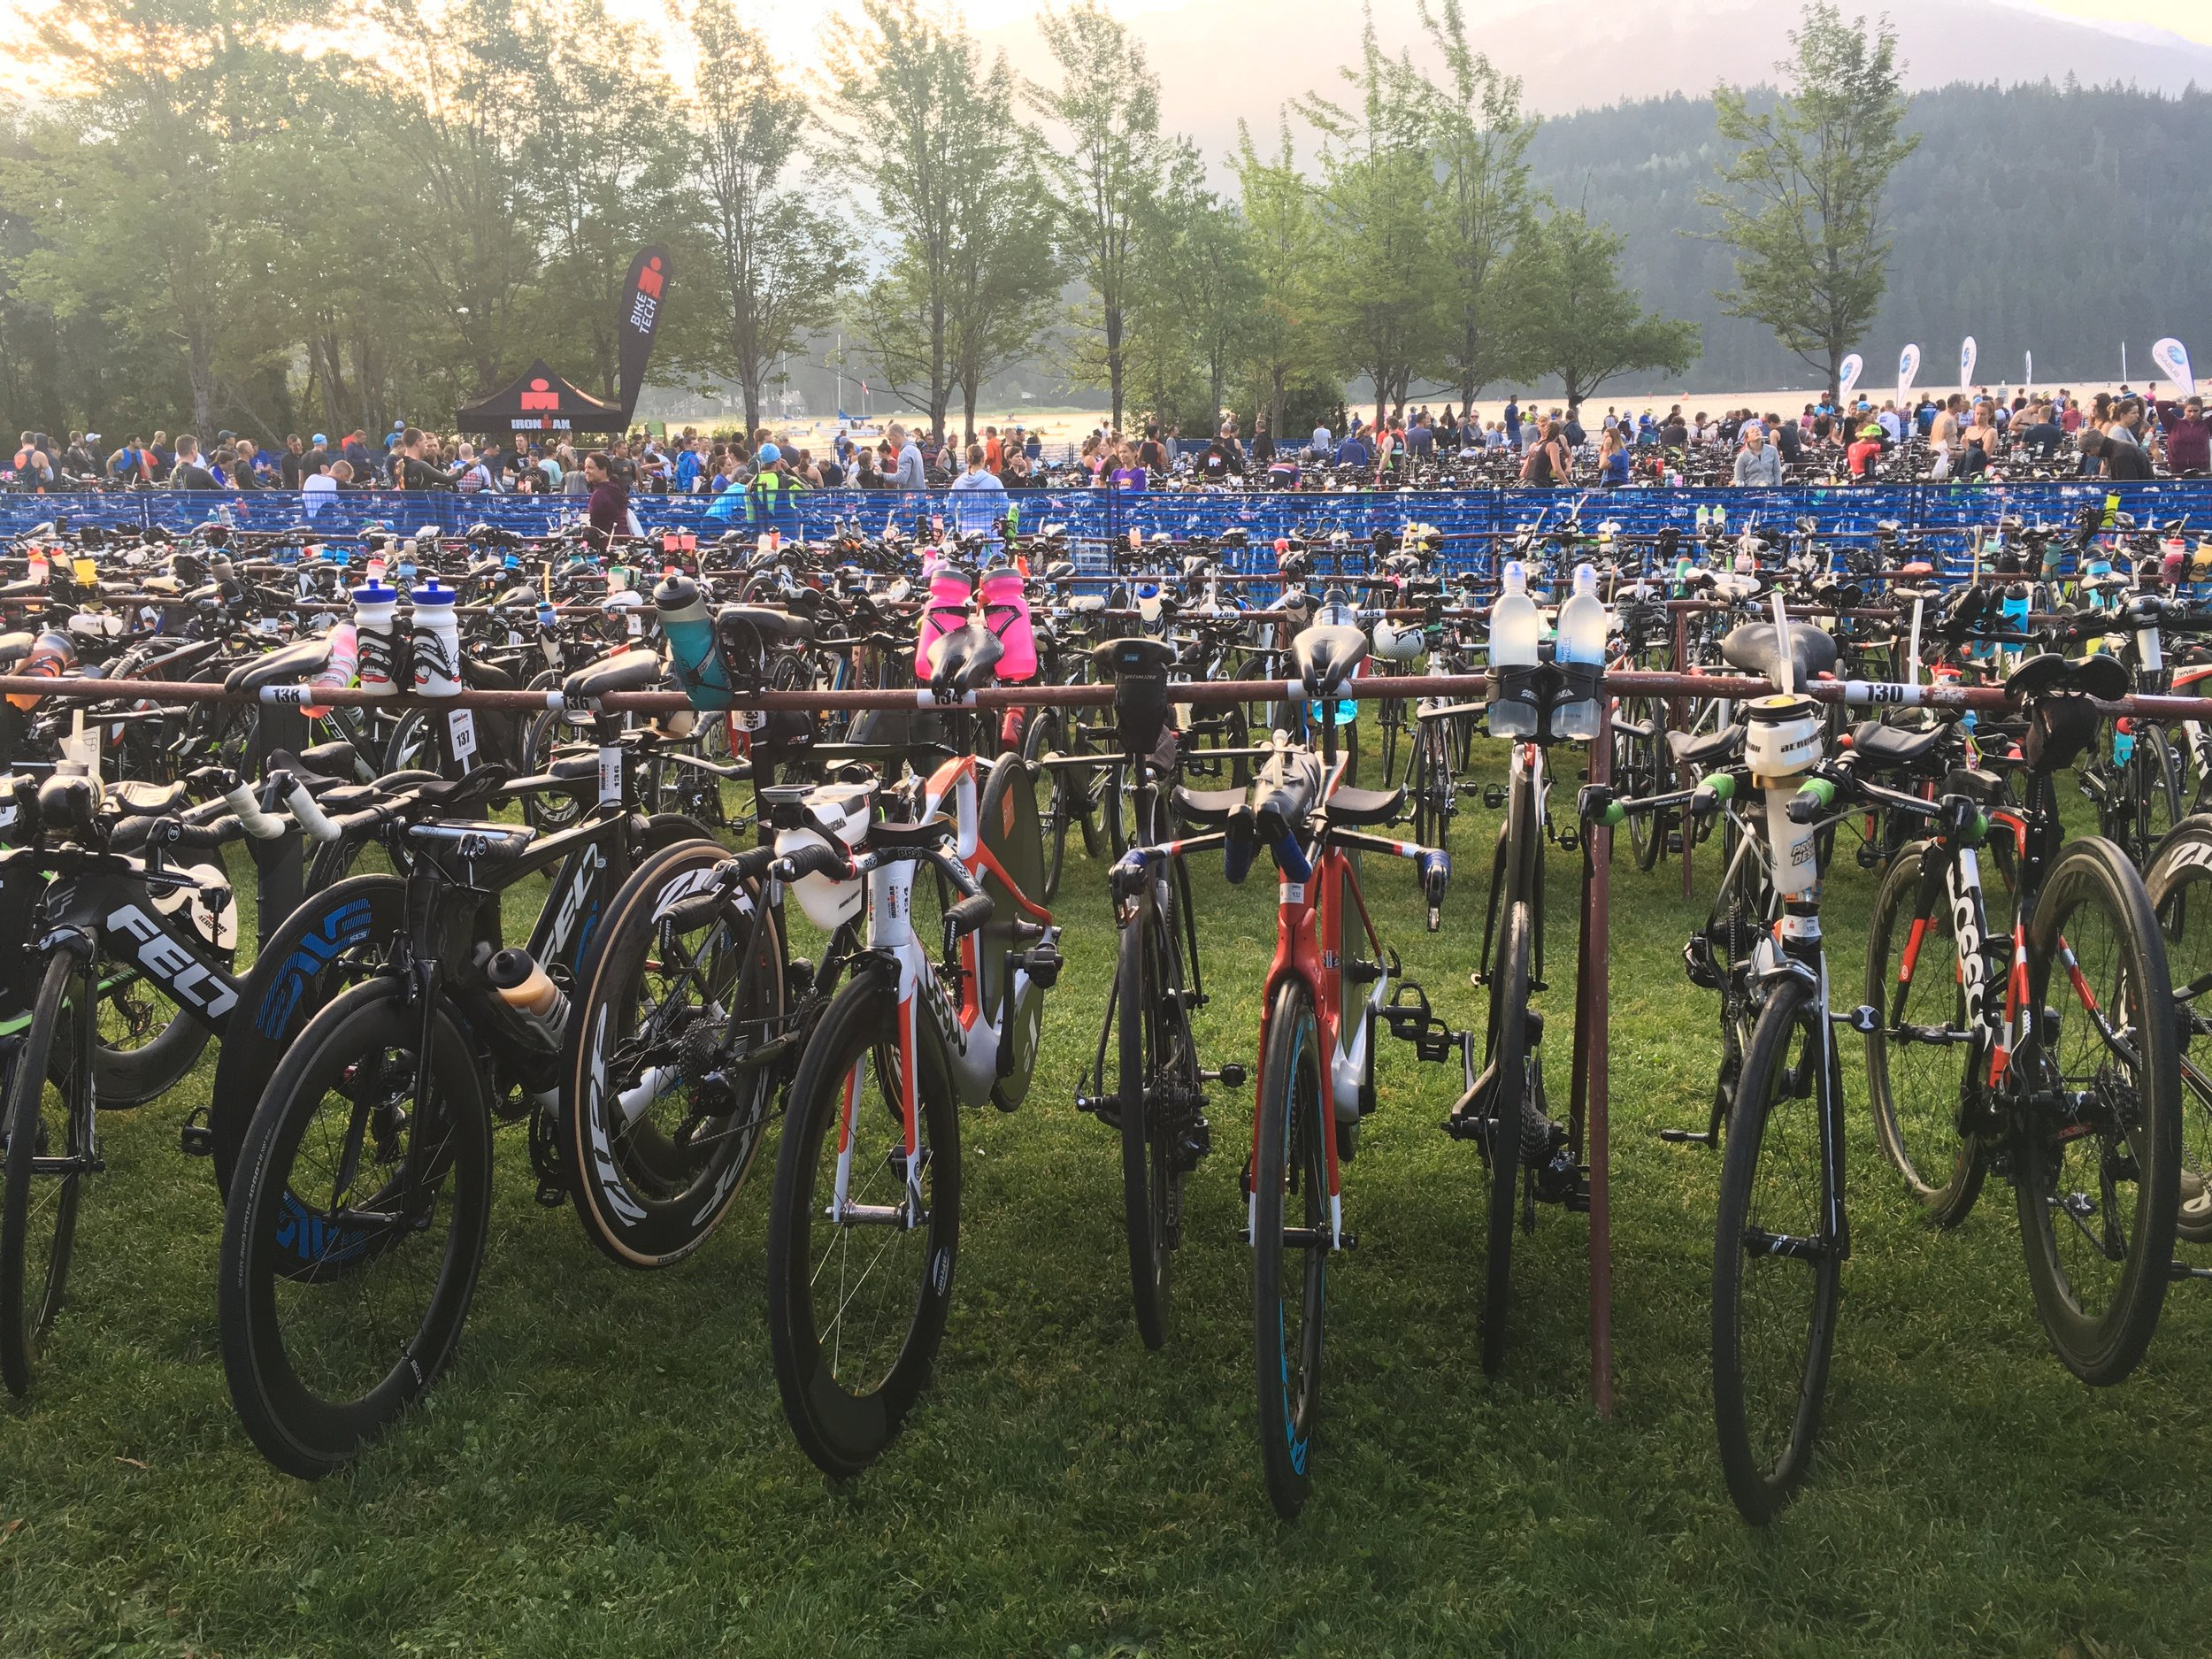 IRONMAN Canada bikes in transition